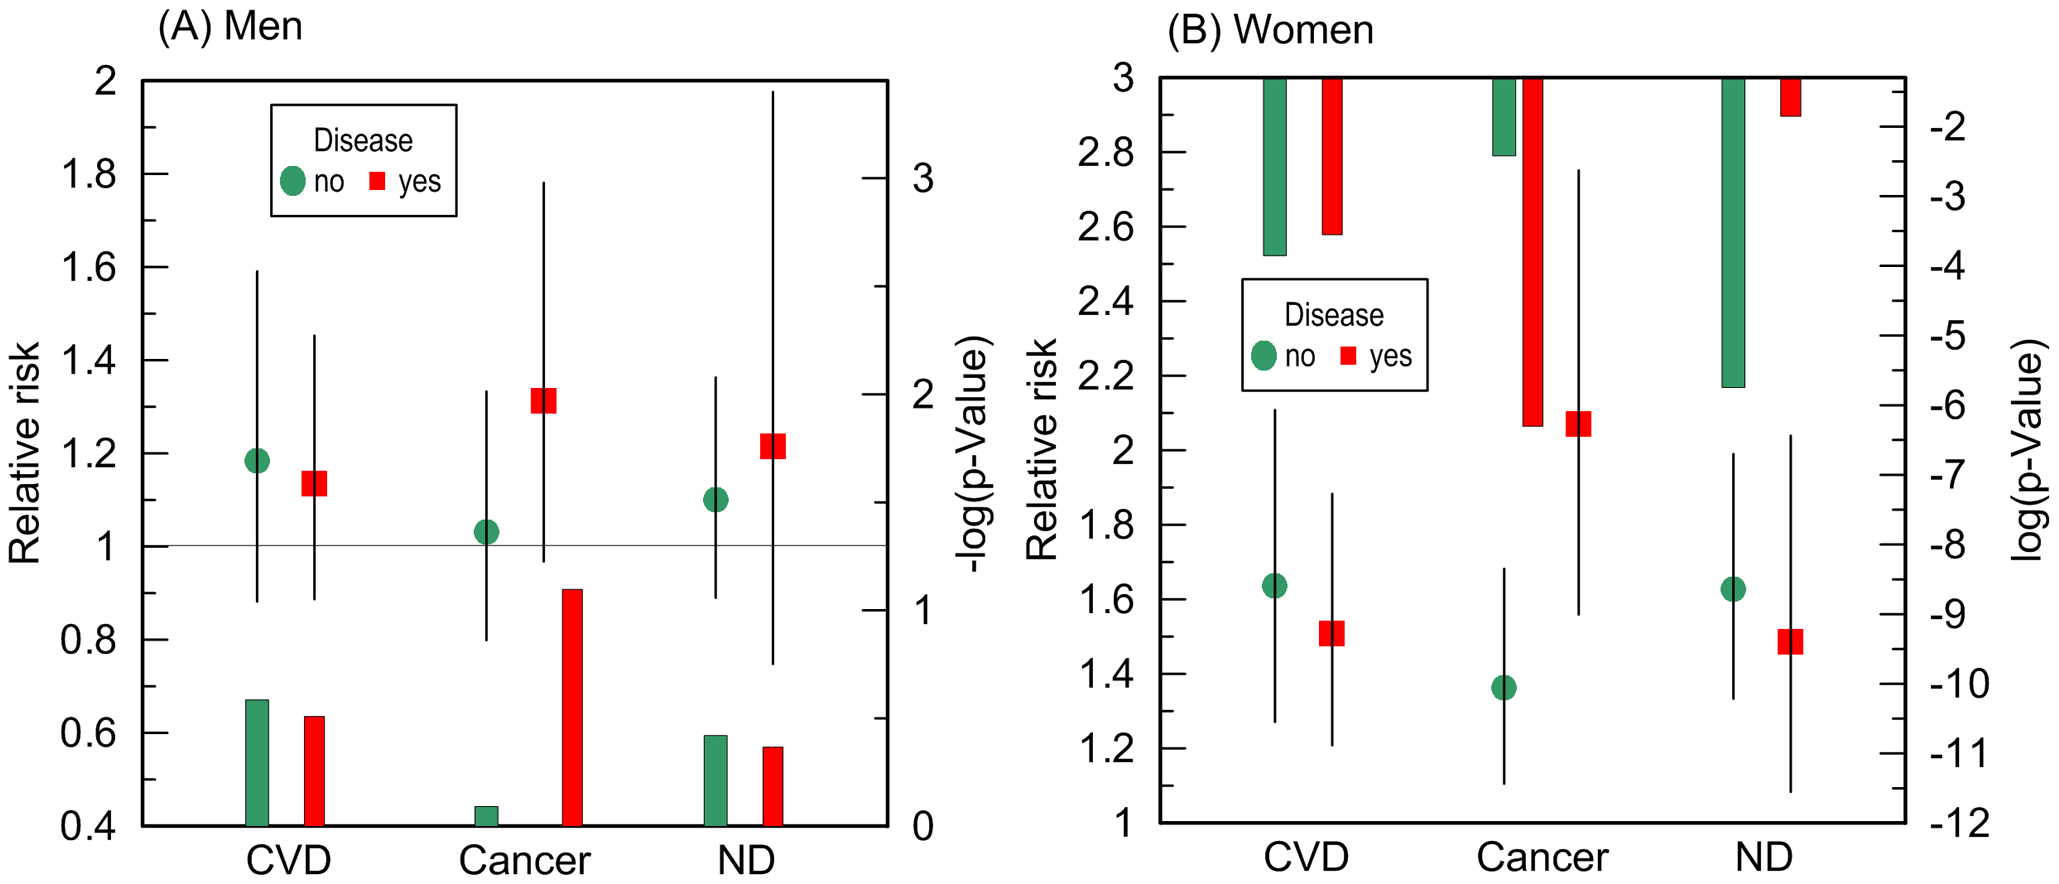 Disease-stratified relative risks of death and p-values for the ApoE4 allele carriers compared to the non-carriers.